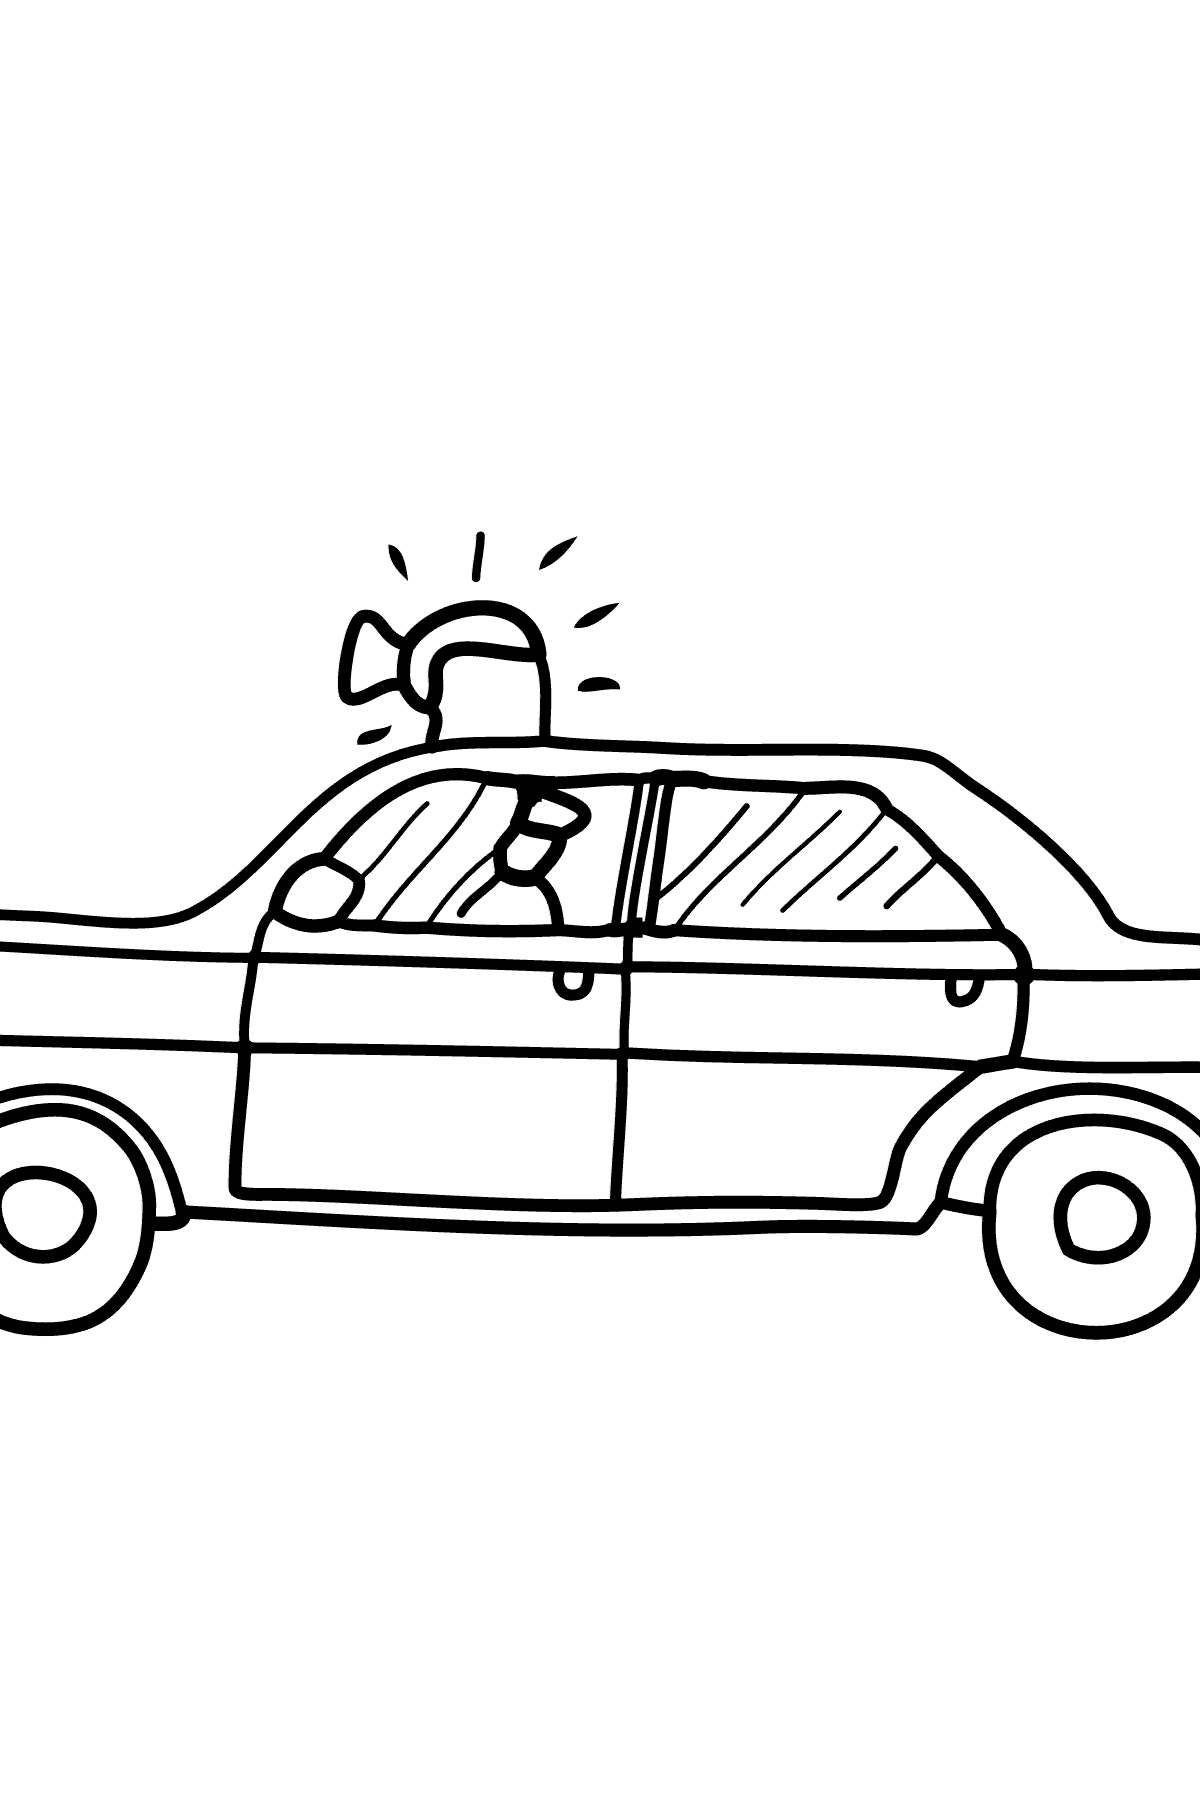 Coloring Page - A Police Car for Kids